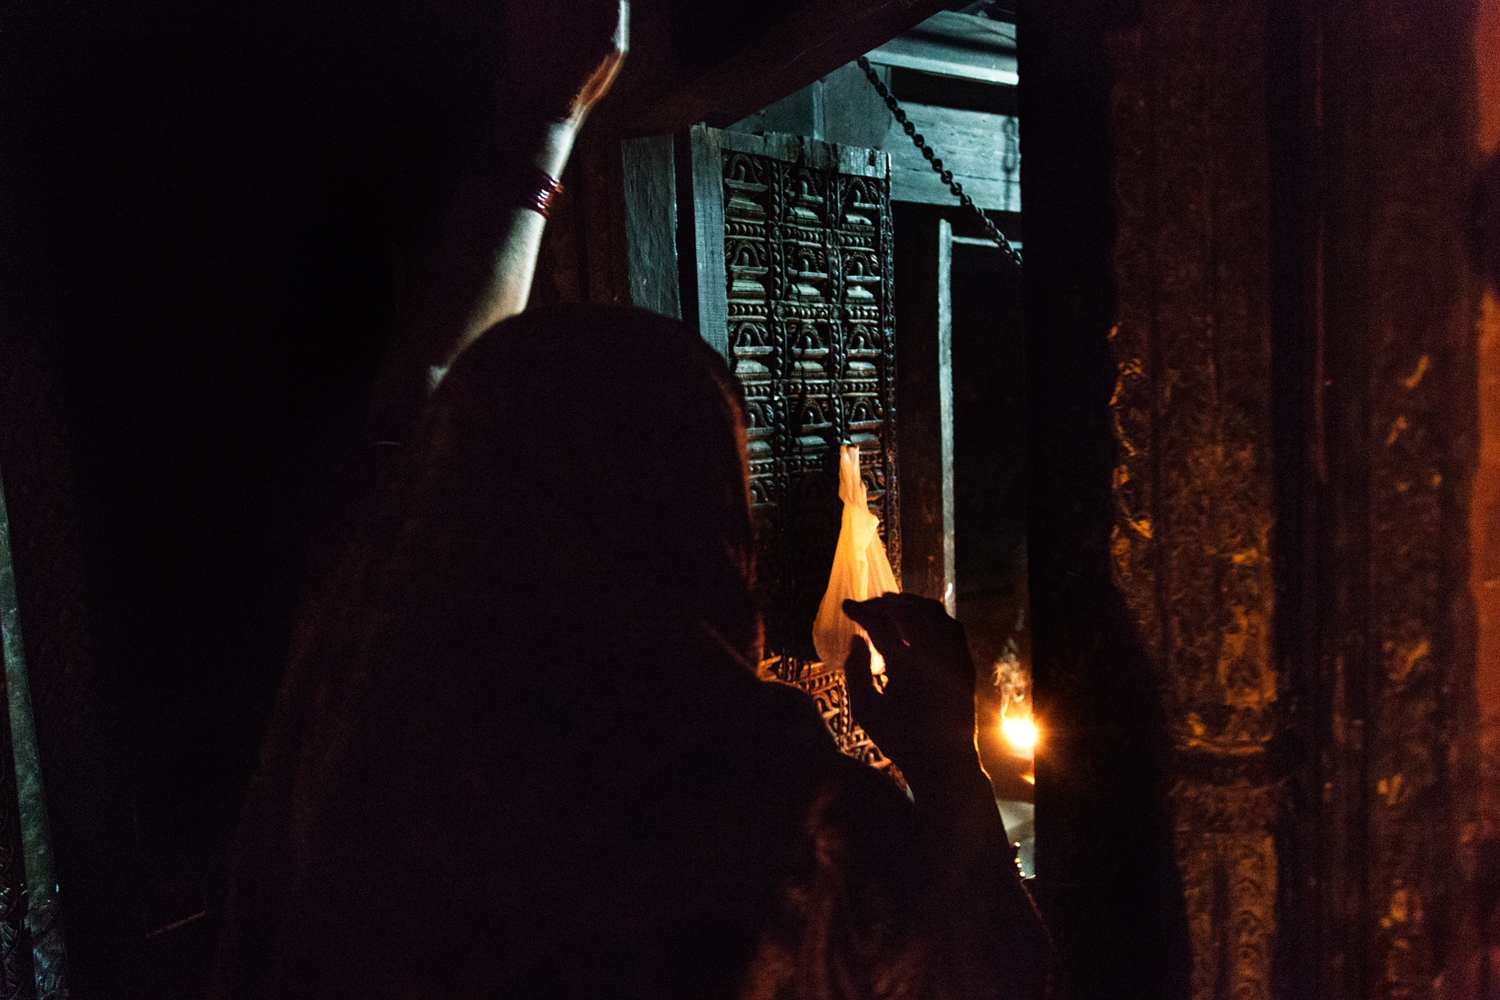 A woman rings a temple bell during evening Aarti. Bell ringing has an important significance during Aarti to welcome the gods into the idol so that devotees may be able to see his or her holy image in the ritualistic light.